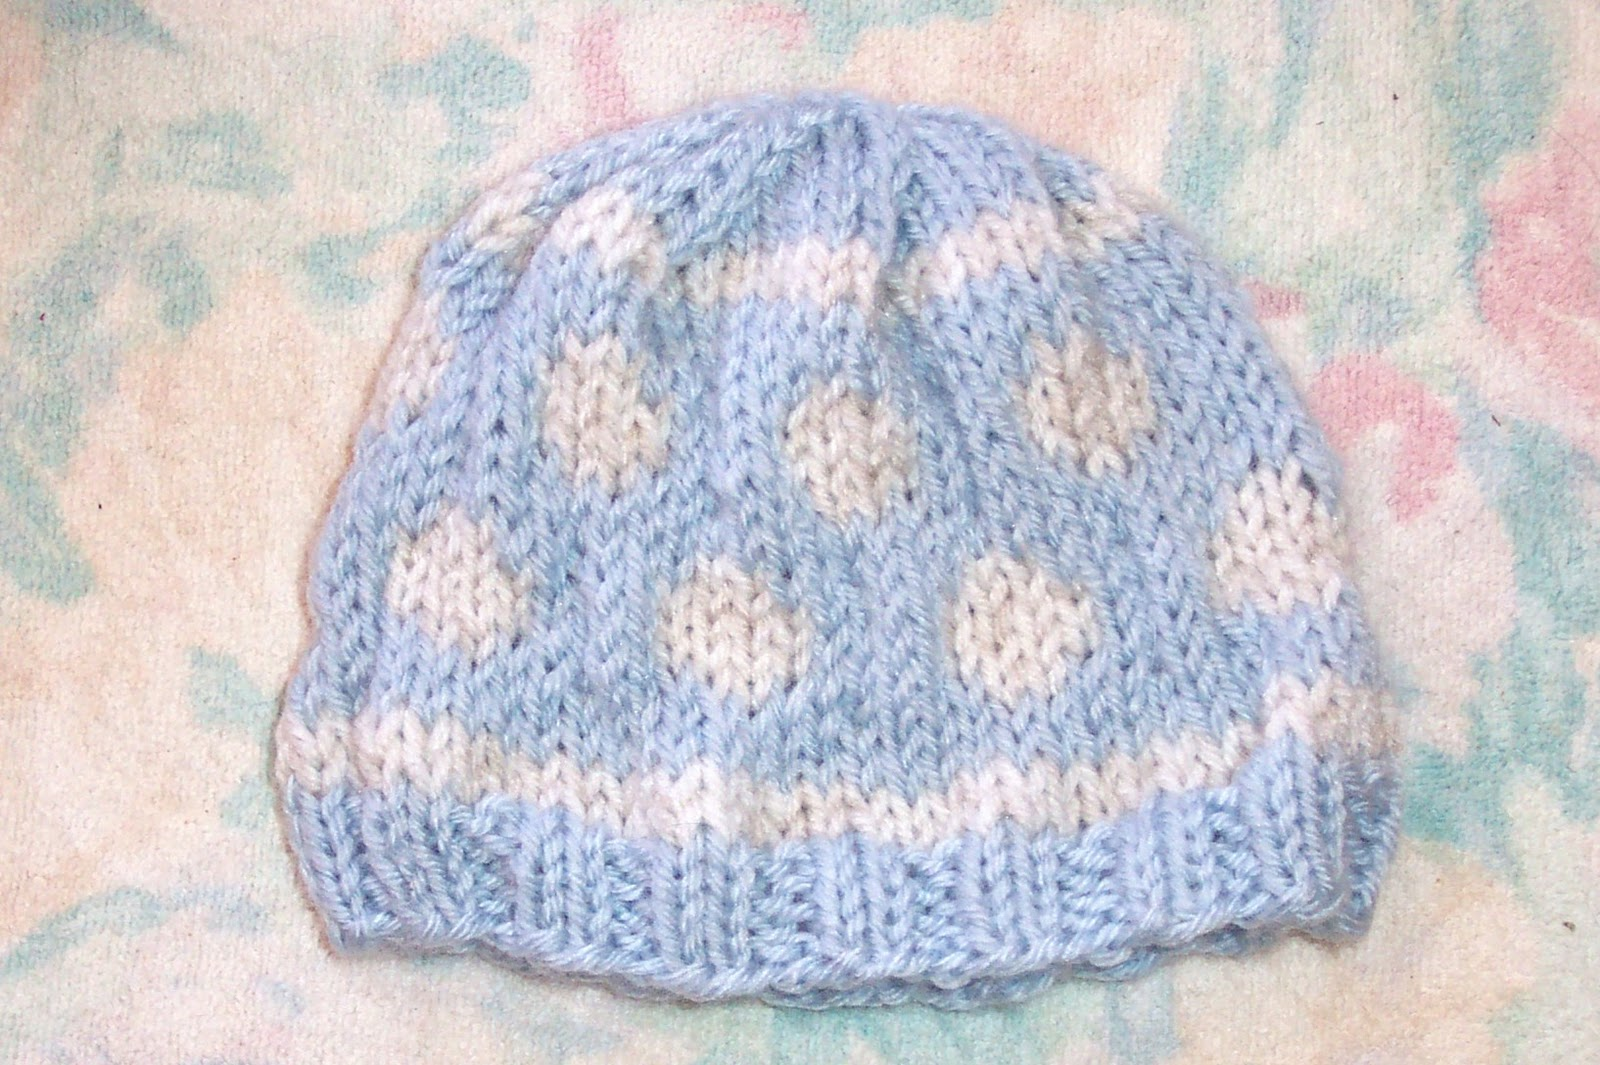 Free Knitting Pattern For Baby Hats : SmoothFox Crochet and Knit: SmoothFoxs Baby Bubbles Knit Hat - Free Pattern